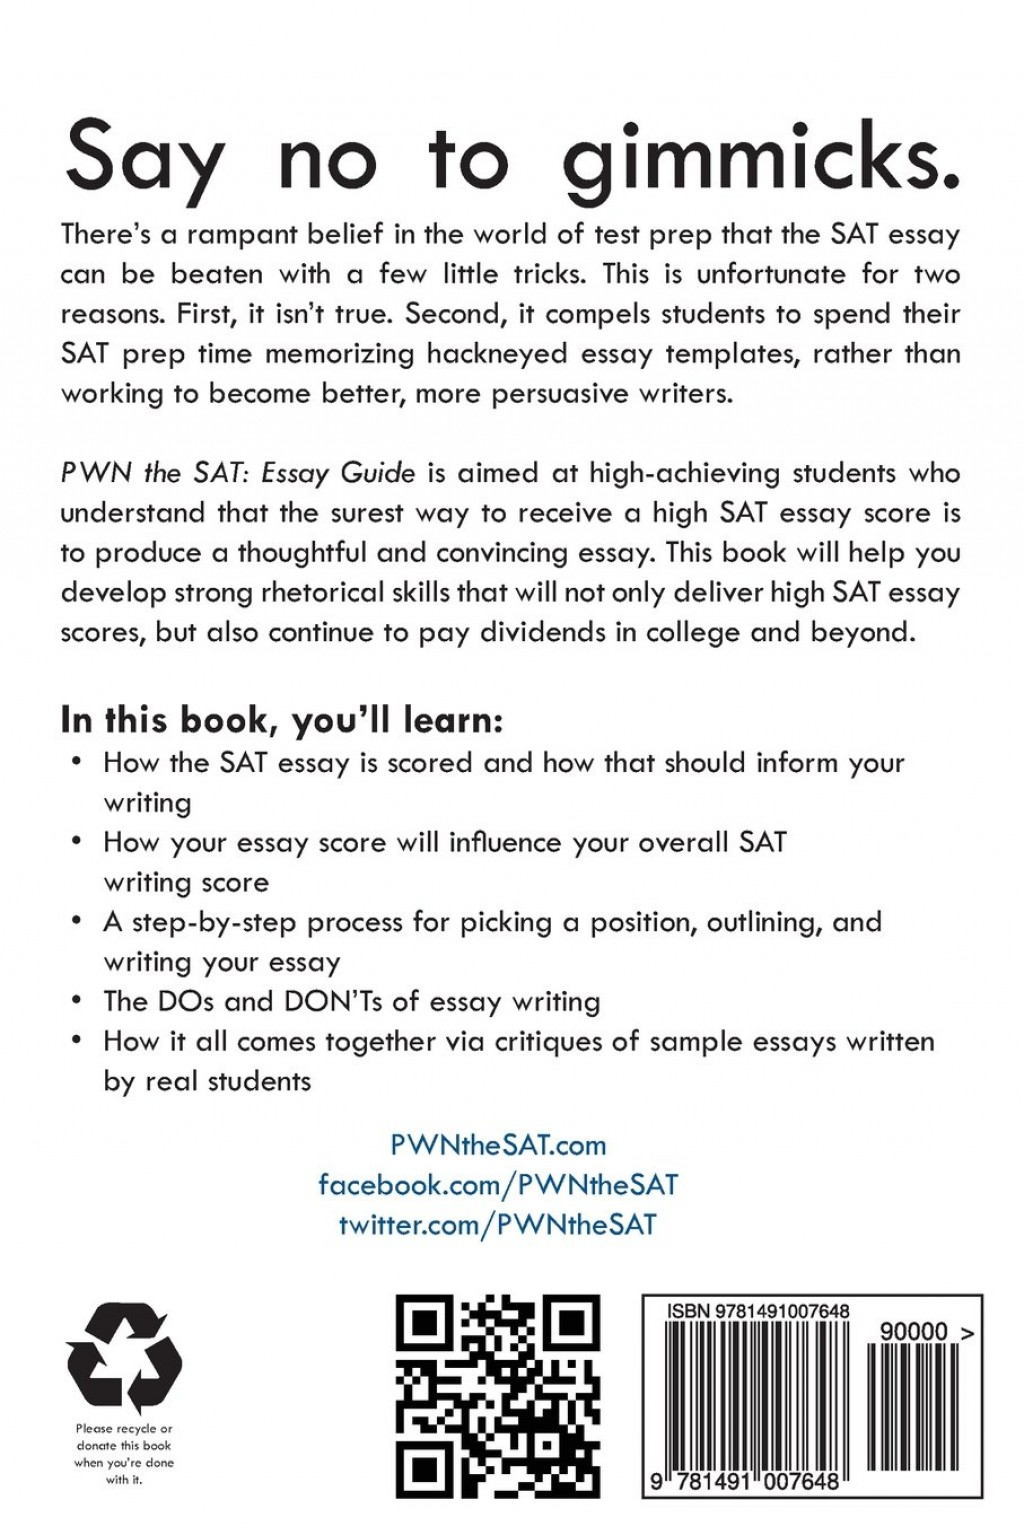 009 Sat Essay 712bcqjf85sl Rare Writing Tips Pdf Topics Average Score For Ivy League Large